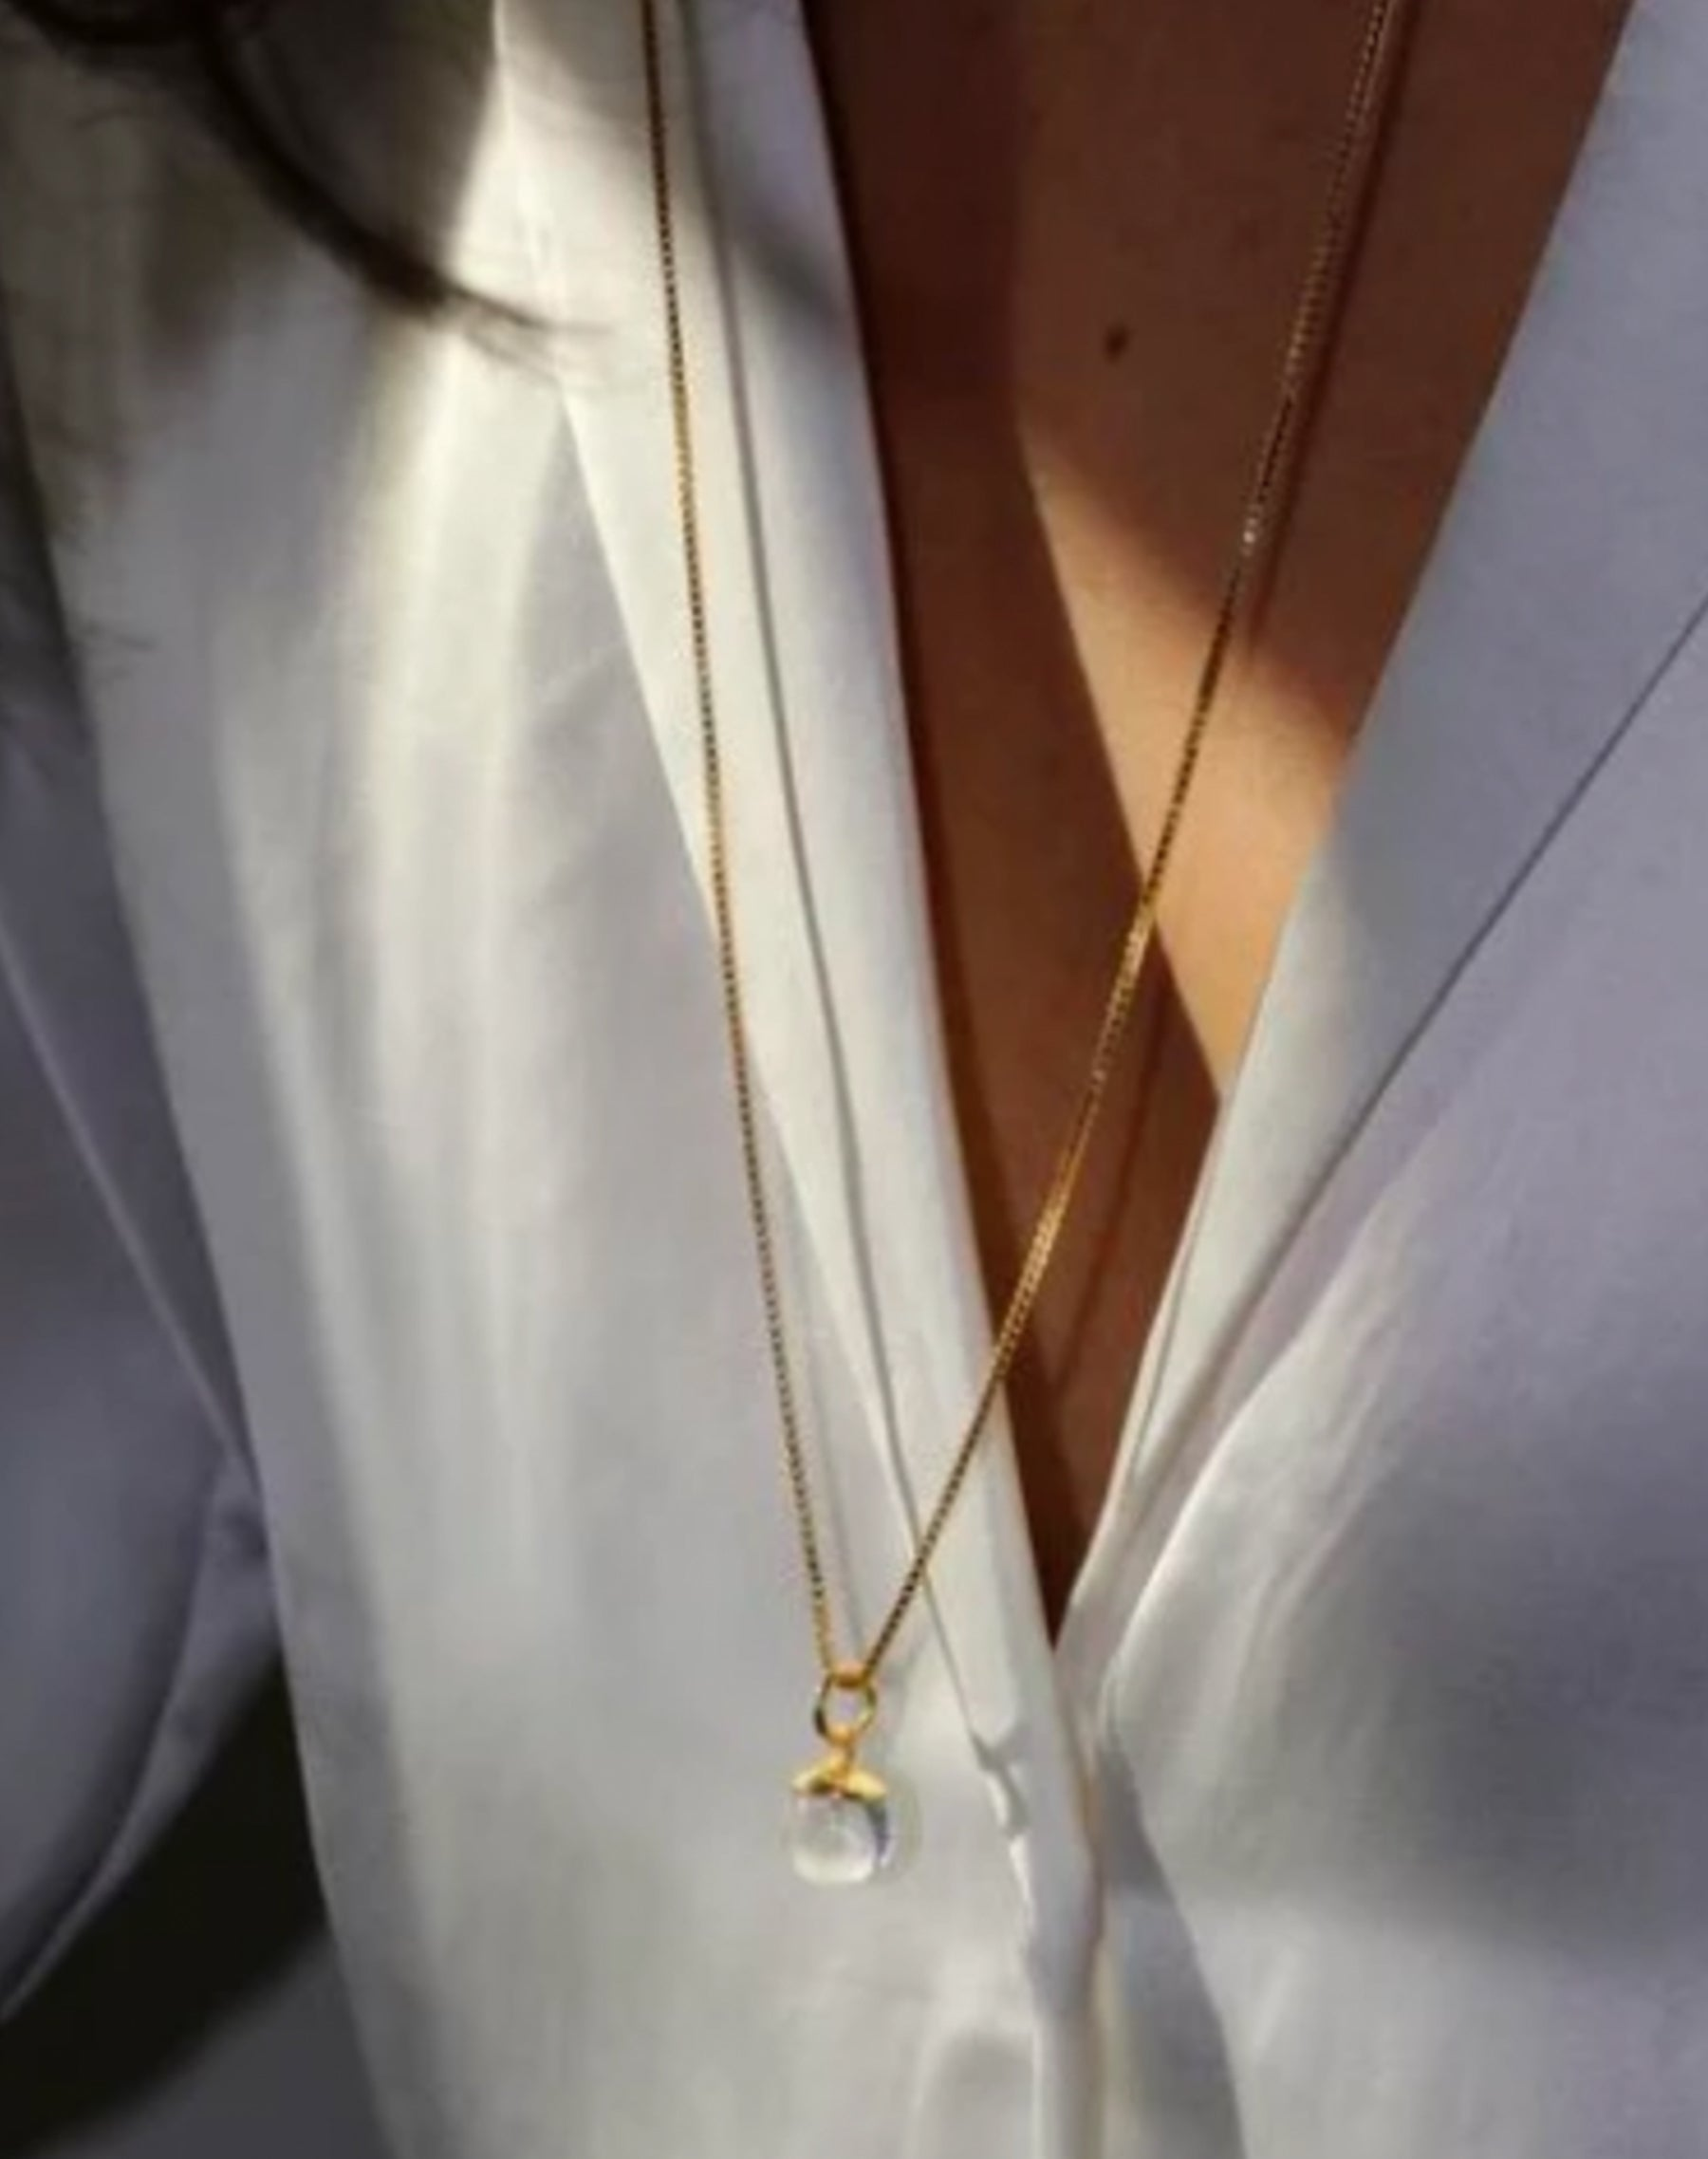 Image of the Lucite necklace in gold by Lisbeth.